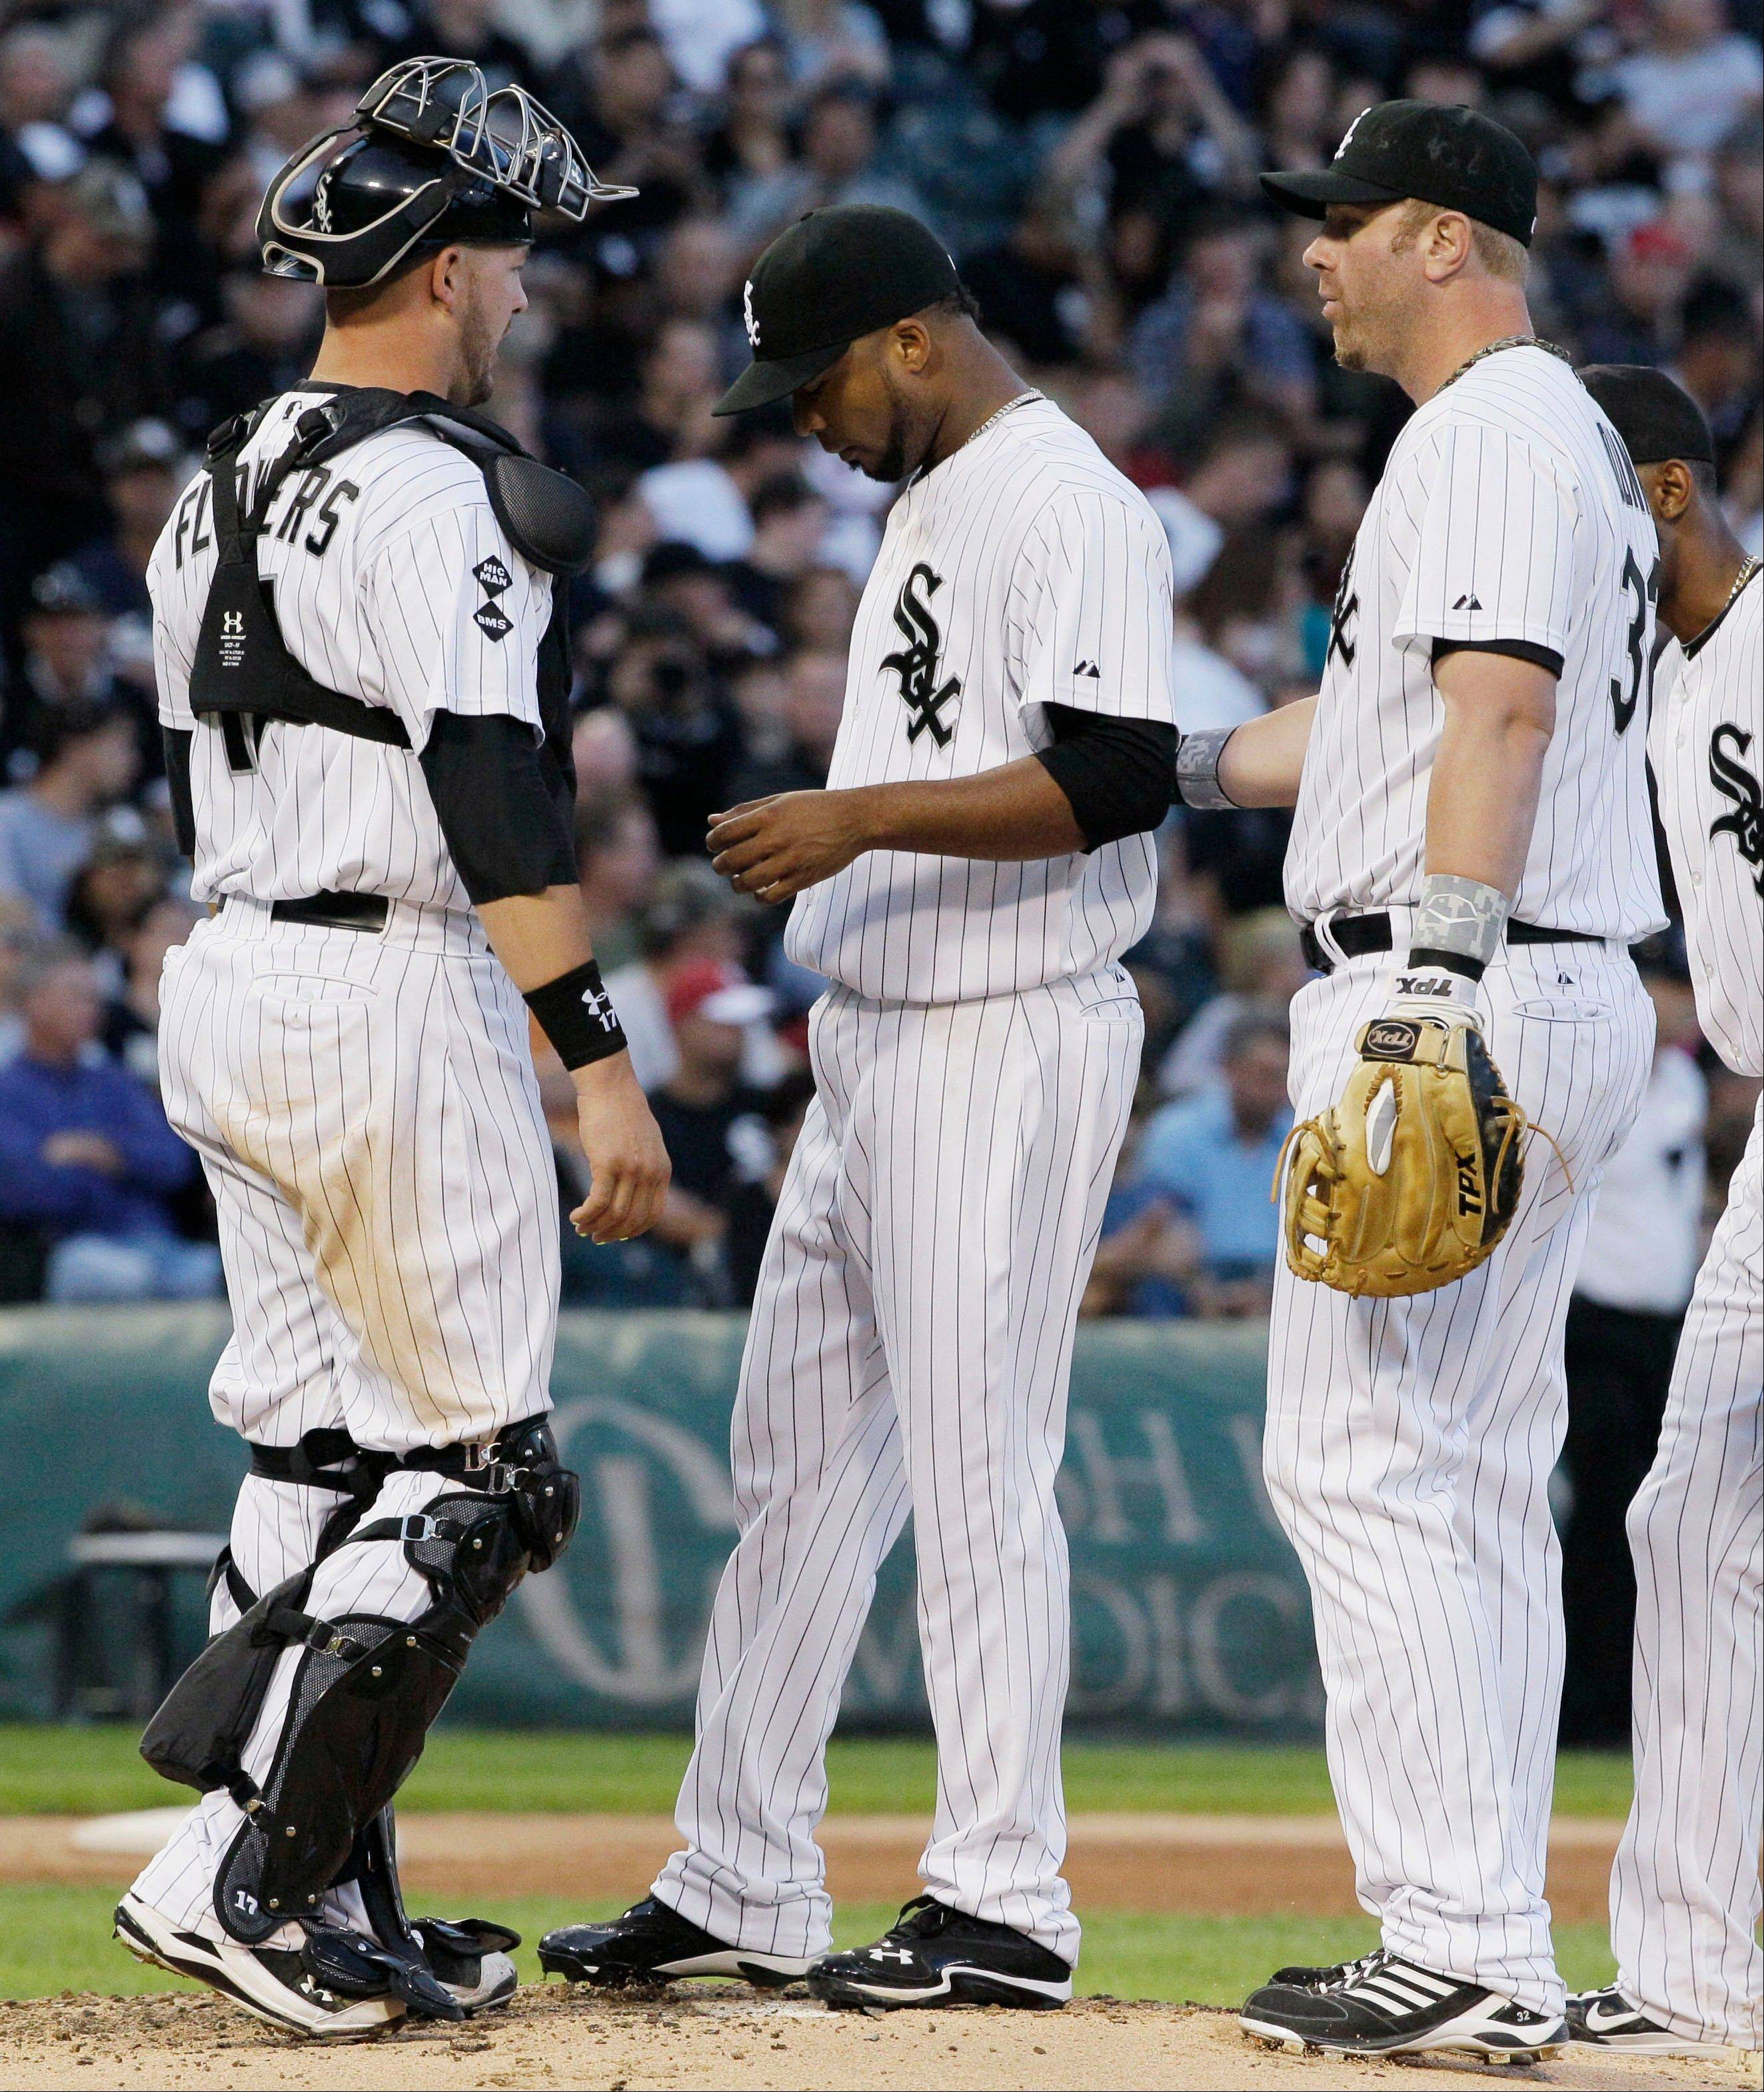 White Sox catcher Tyler Flowers and first baseman Adam Dunn talk to starter Francisco Liriano, middle, after Oakland's Josh Reddick hit an RBI single in the fourth inning Saturday night. Liriano didn't make it out of the fourth inning.